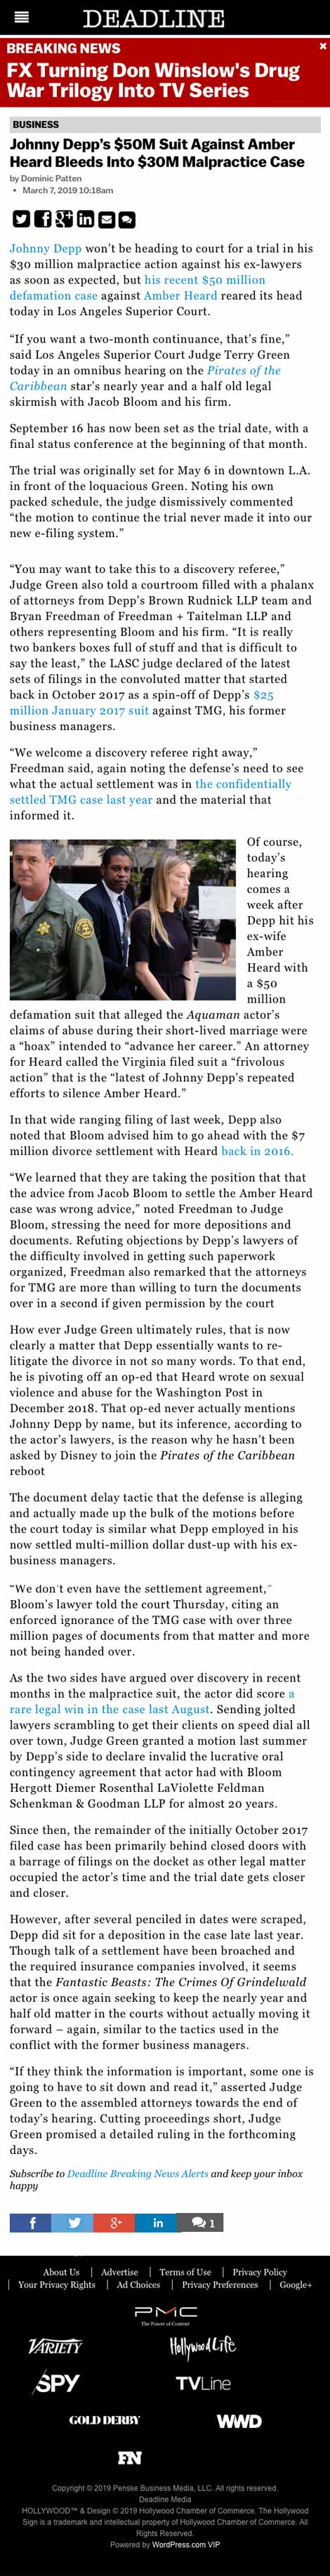 Johnny Depp's $50M Suit Against Amber Heard Bleeds Into $30M Malpractice Case - article by DeadlineHollywood.com